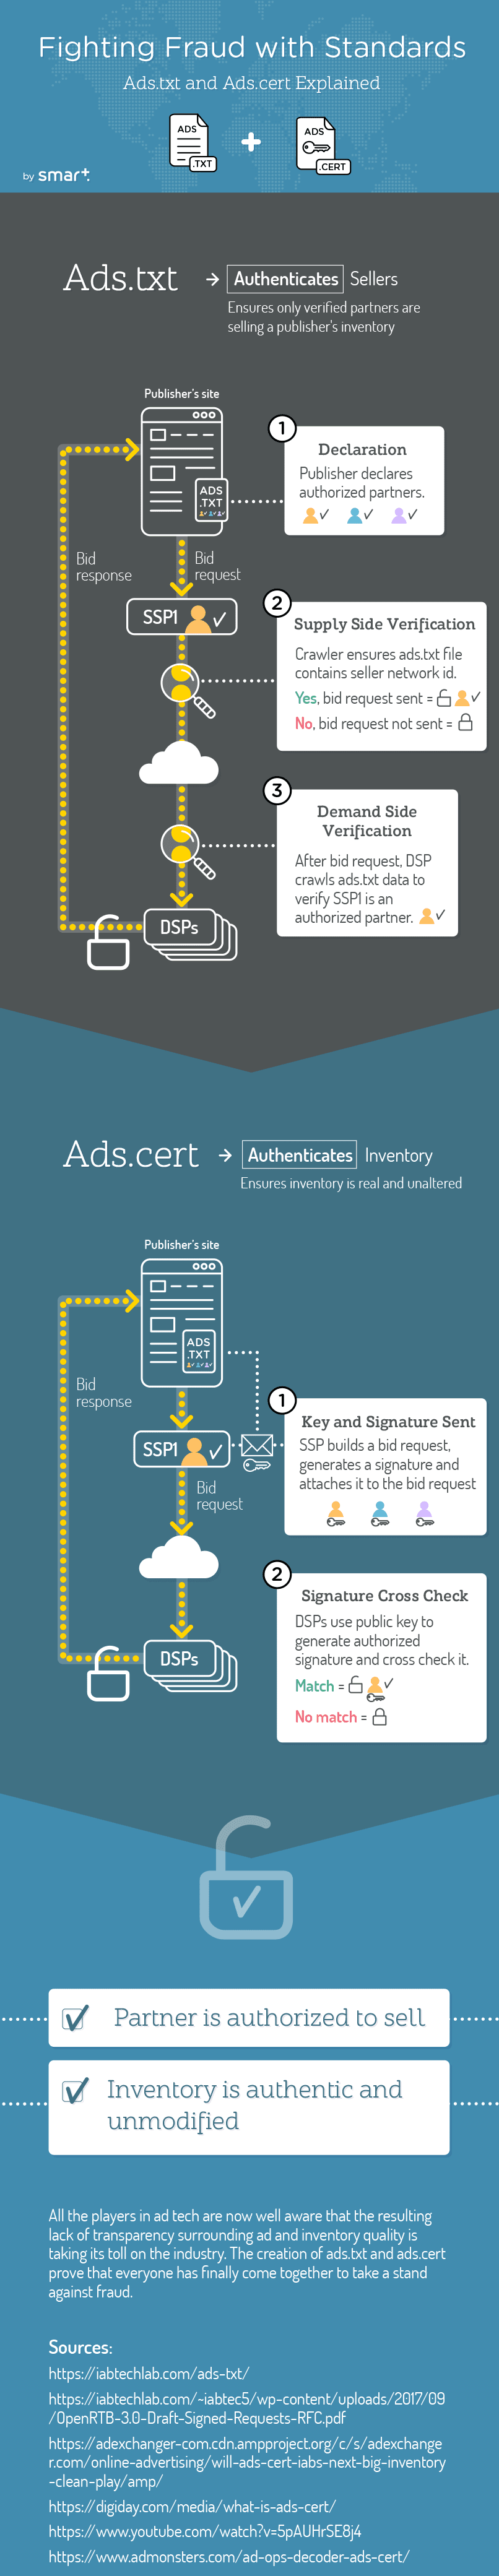 Ad Fraud Prevention with Ads.txt and Ads.cert